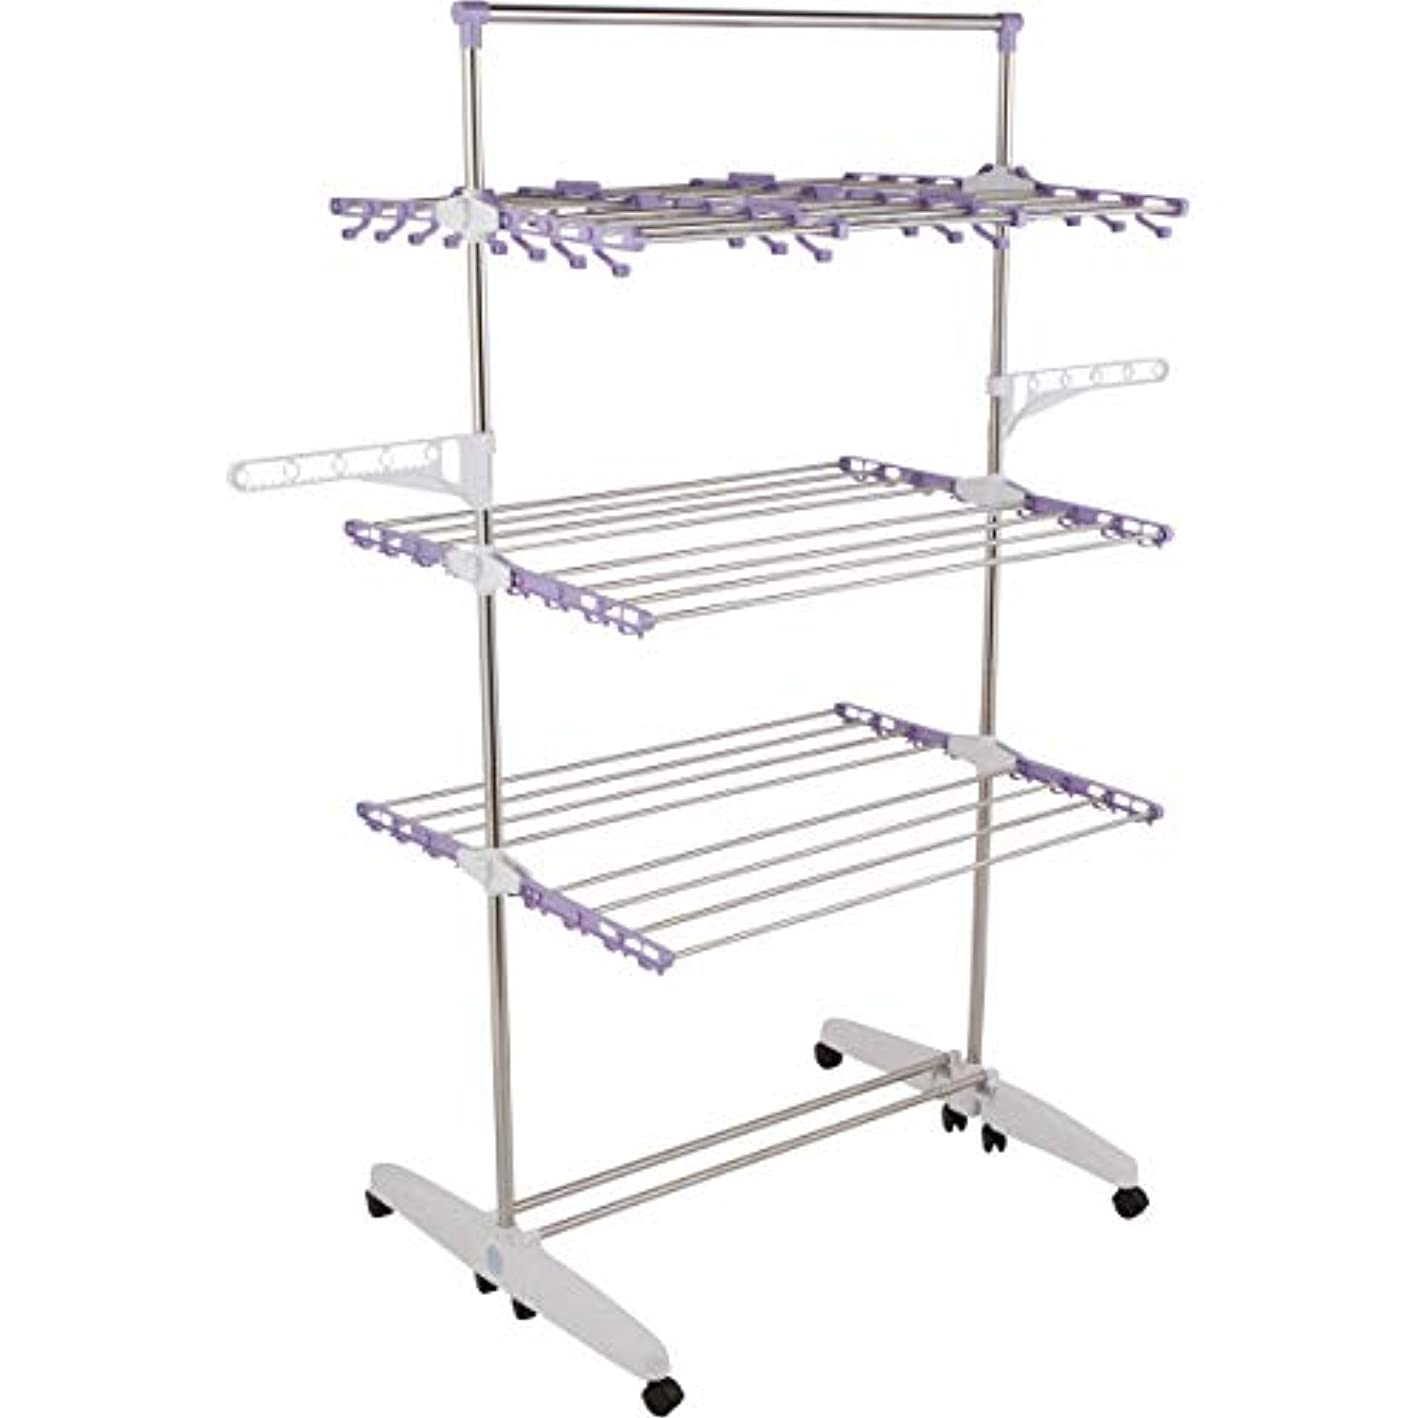 !iT Jeans High Capacity Heavy Duty 3-Tier Premium Clothes Drying Rack - Fully Adjustable Stainless Steel Racks - Fully Foldable - 8 Casters - Indoor & Outdoor